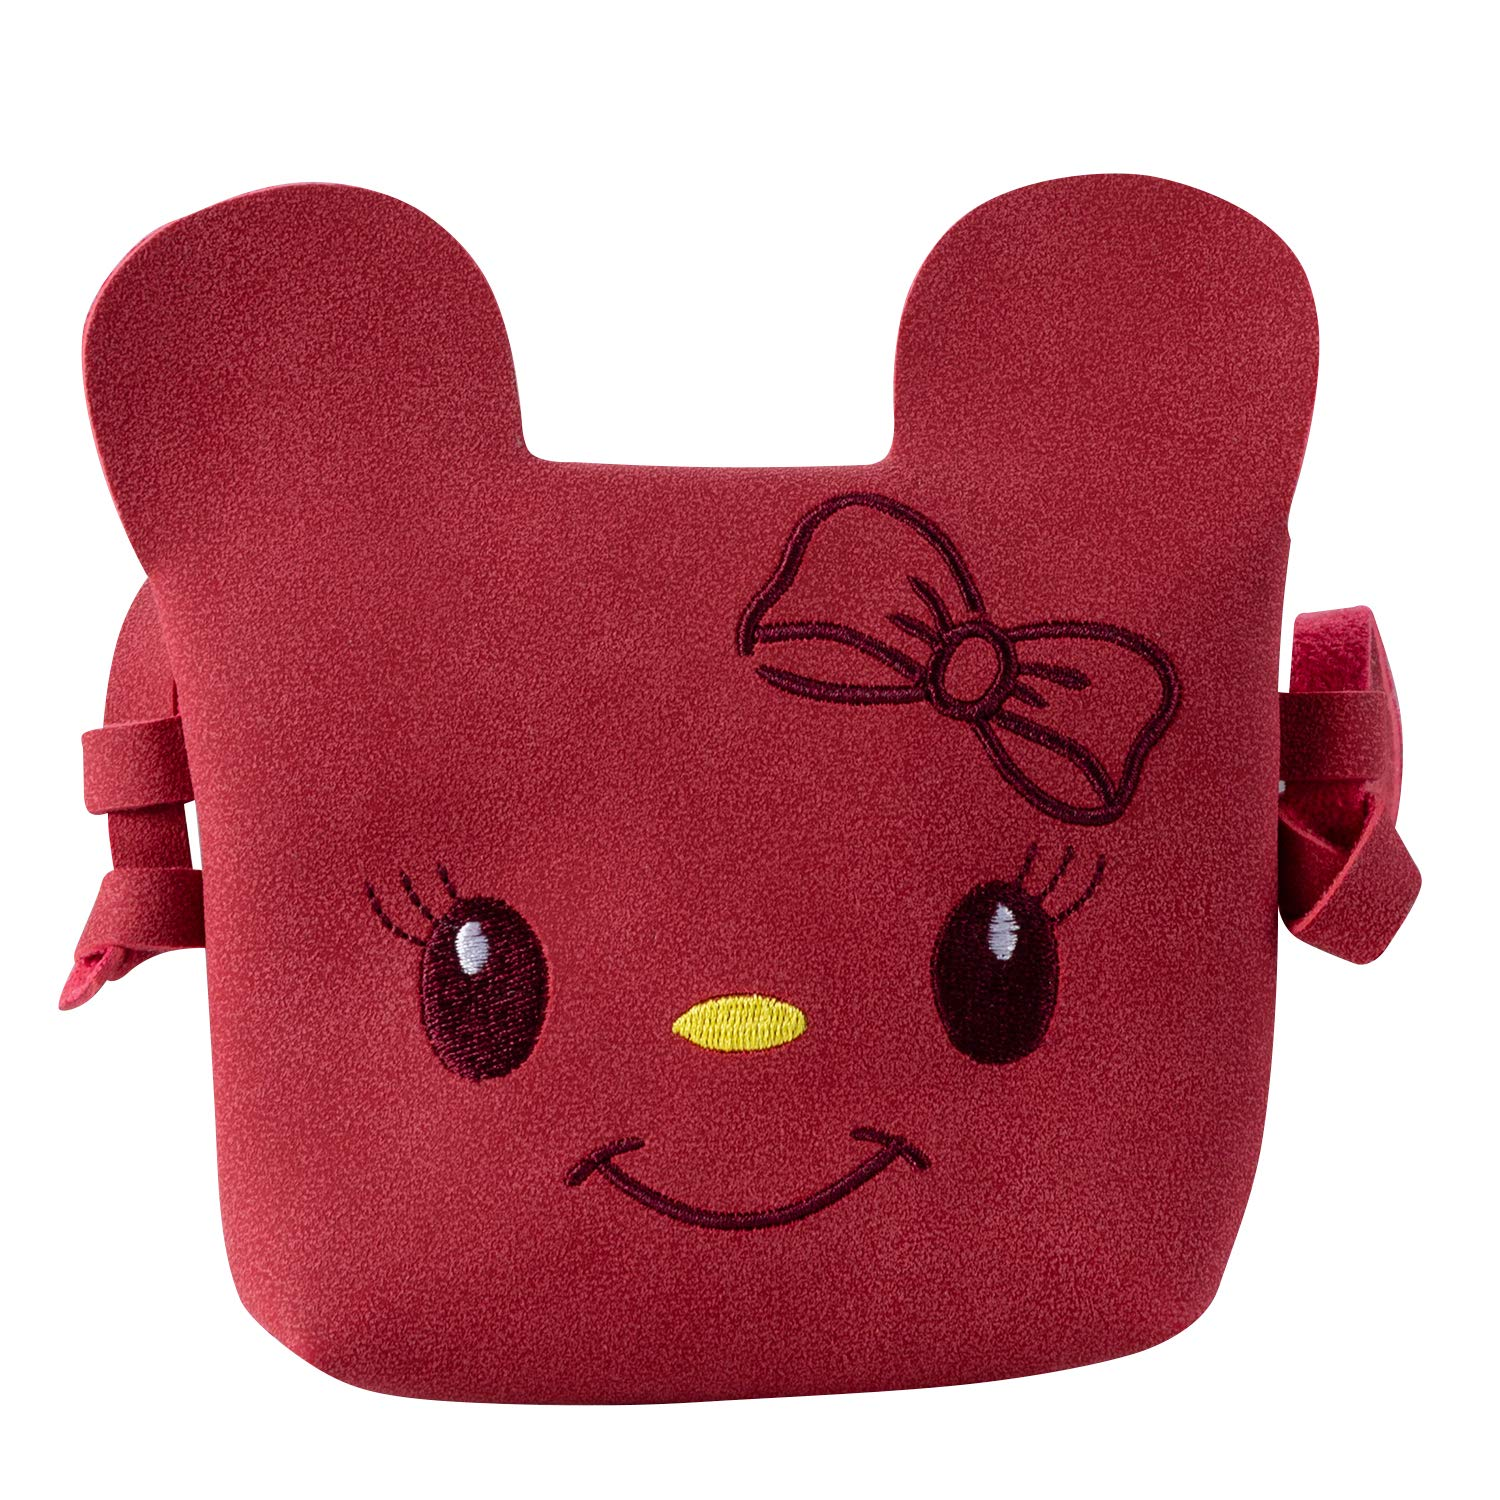 18229d8419 Amazon.com  Deoot Red Little Girls Purse Cute Cartoon Shoulder Crossbody Bag  for Kids